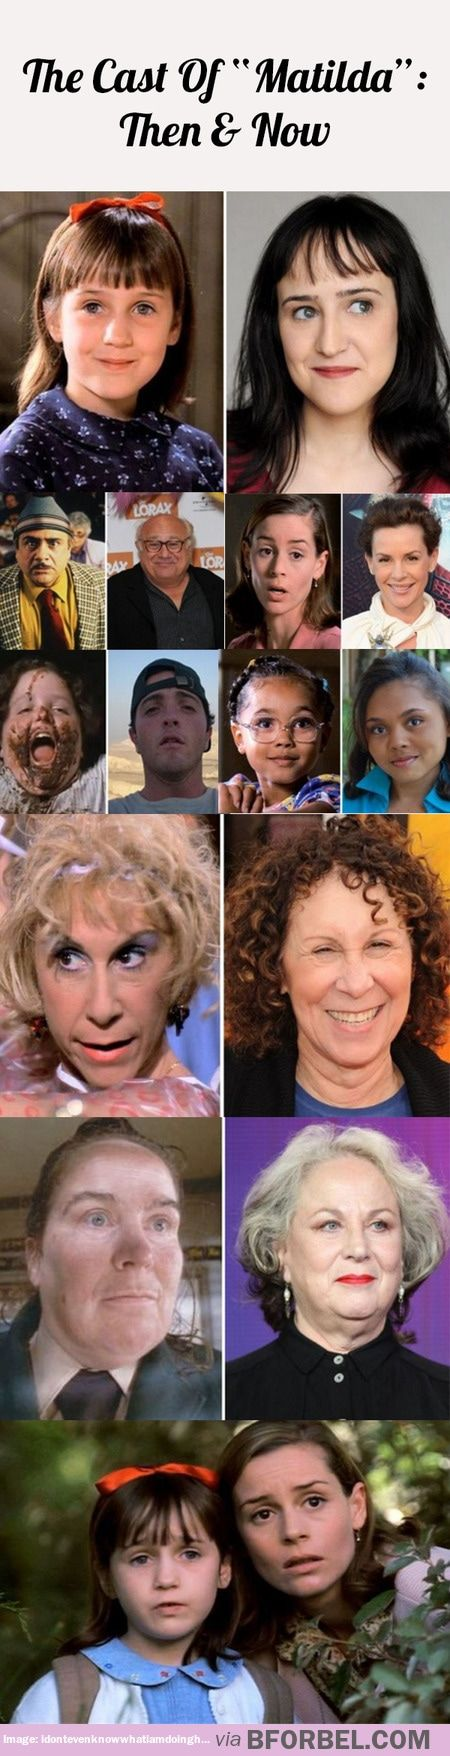 "The cast of ""Matilda"": Then and now"